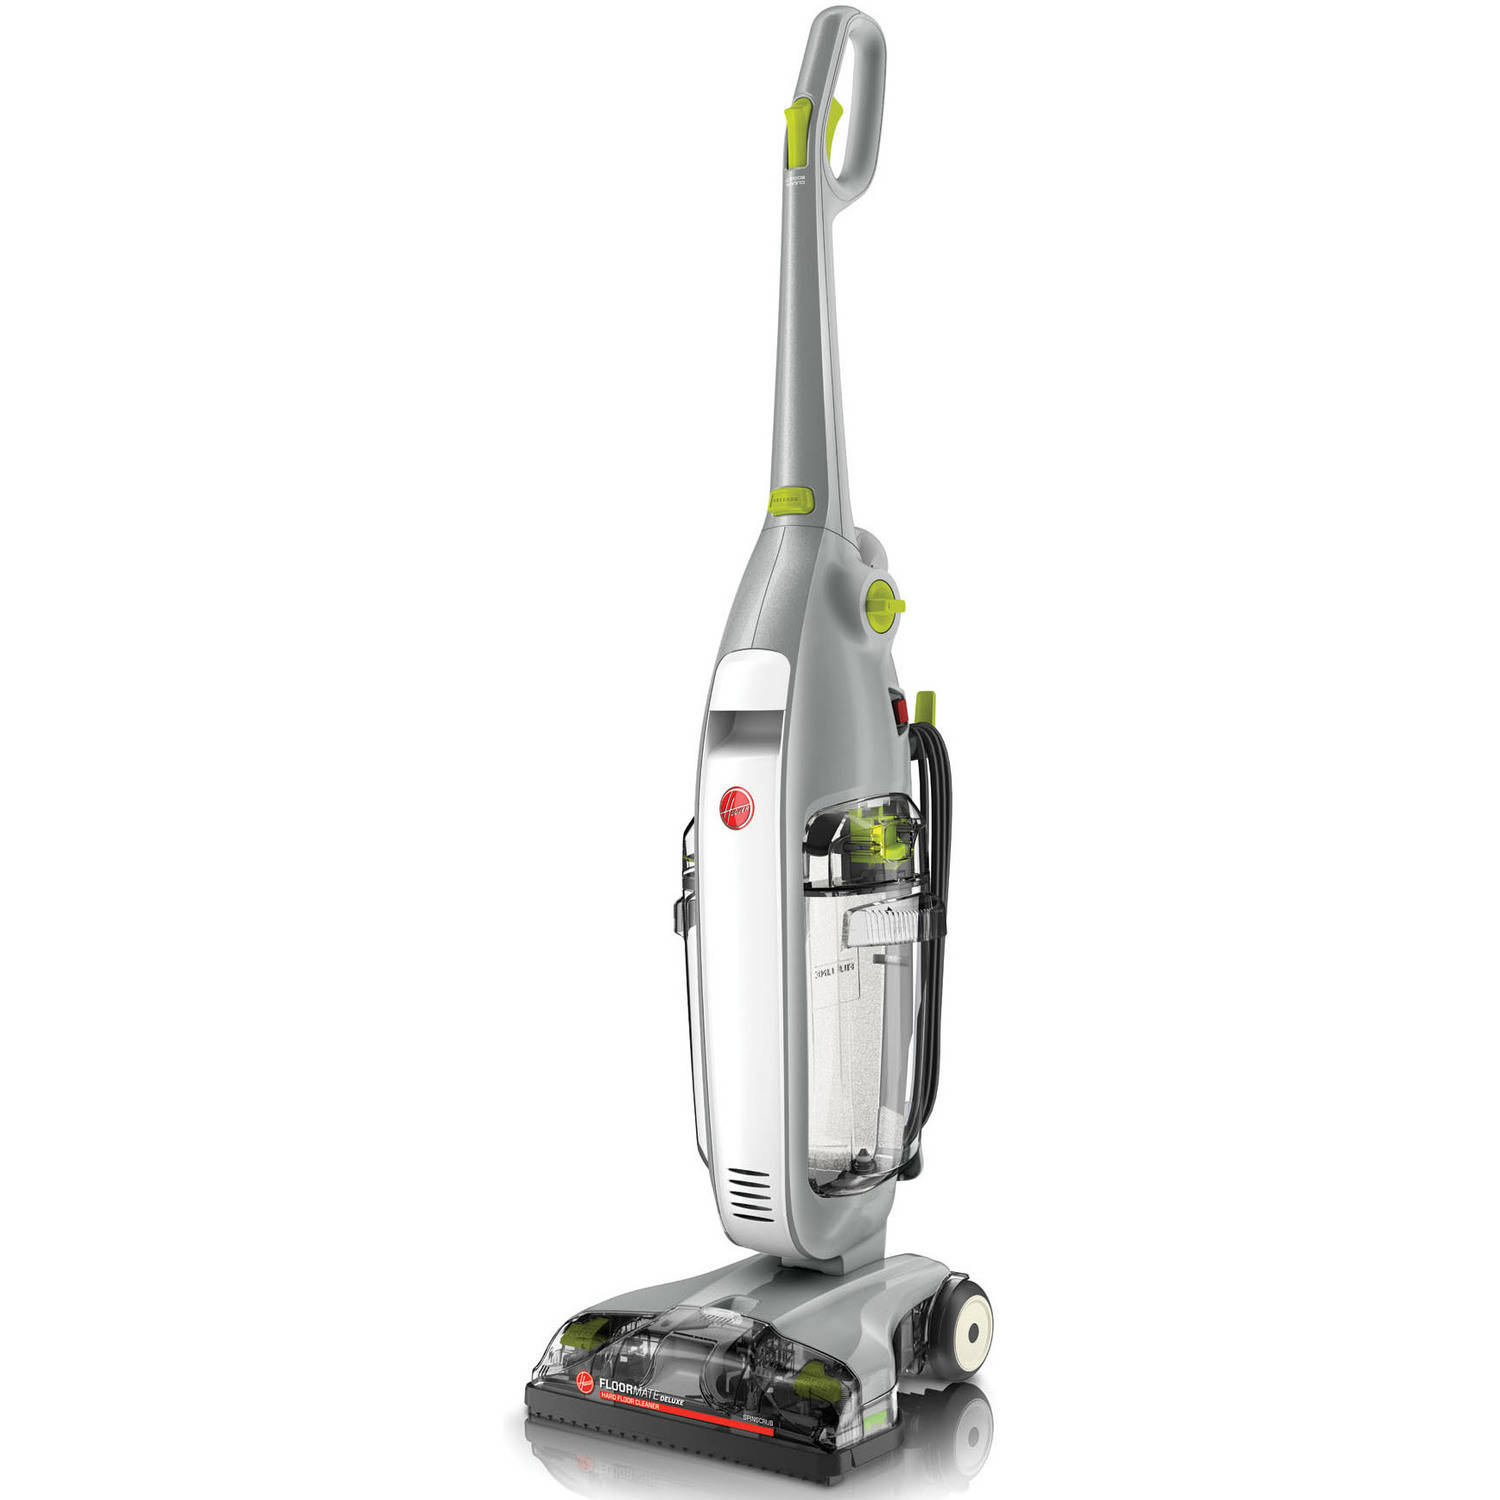 watch hoover floors hard cleaner floor done wash cleaners floormate dry scrub